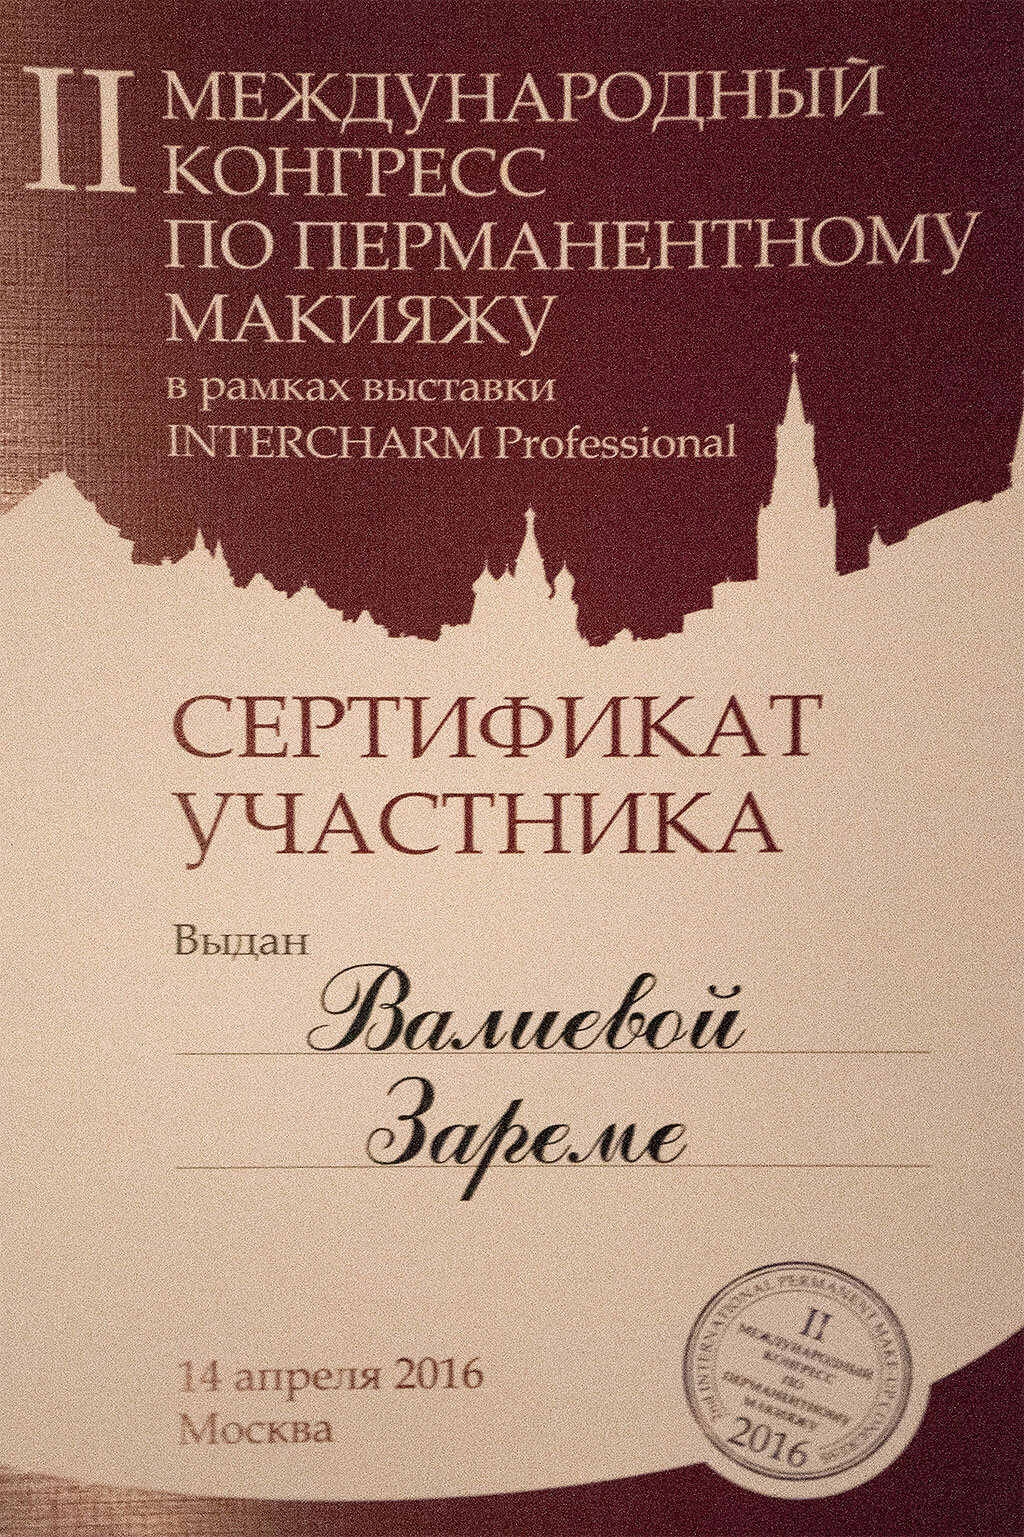 certificate-of-membership-3